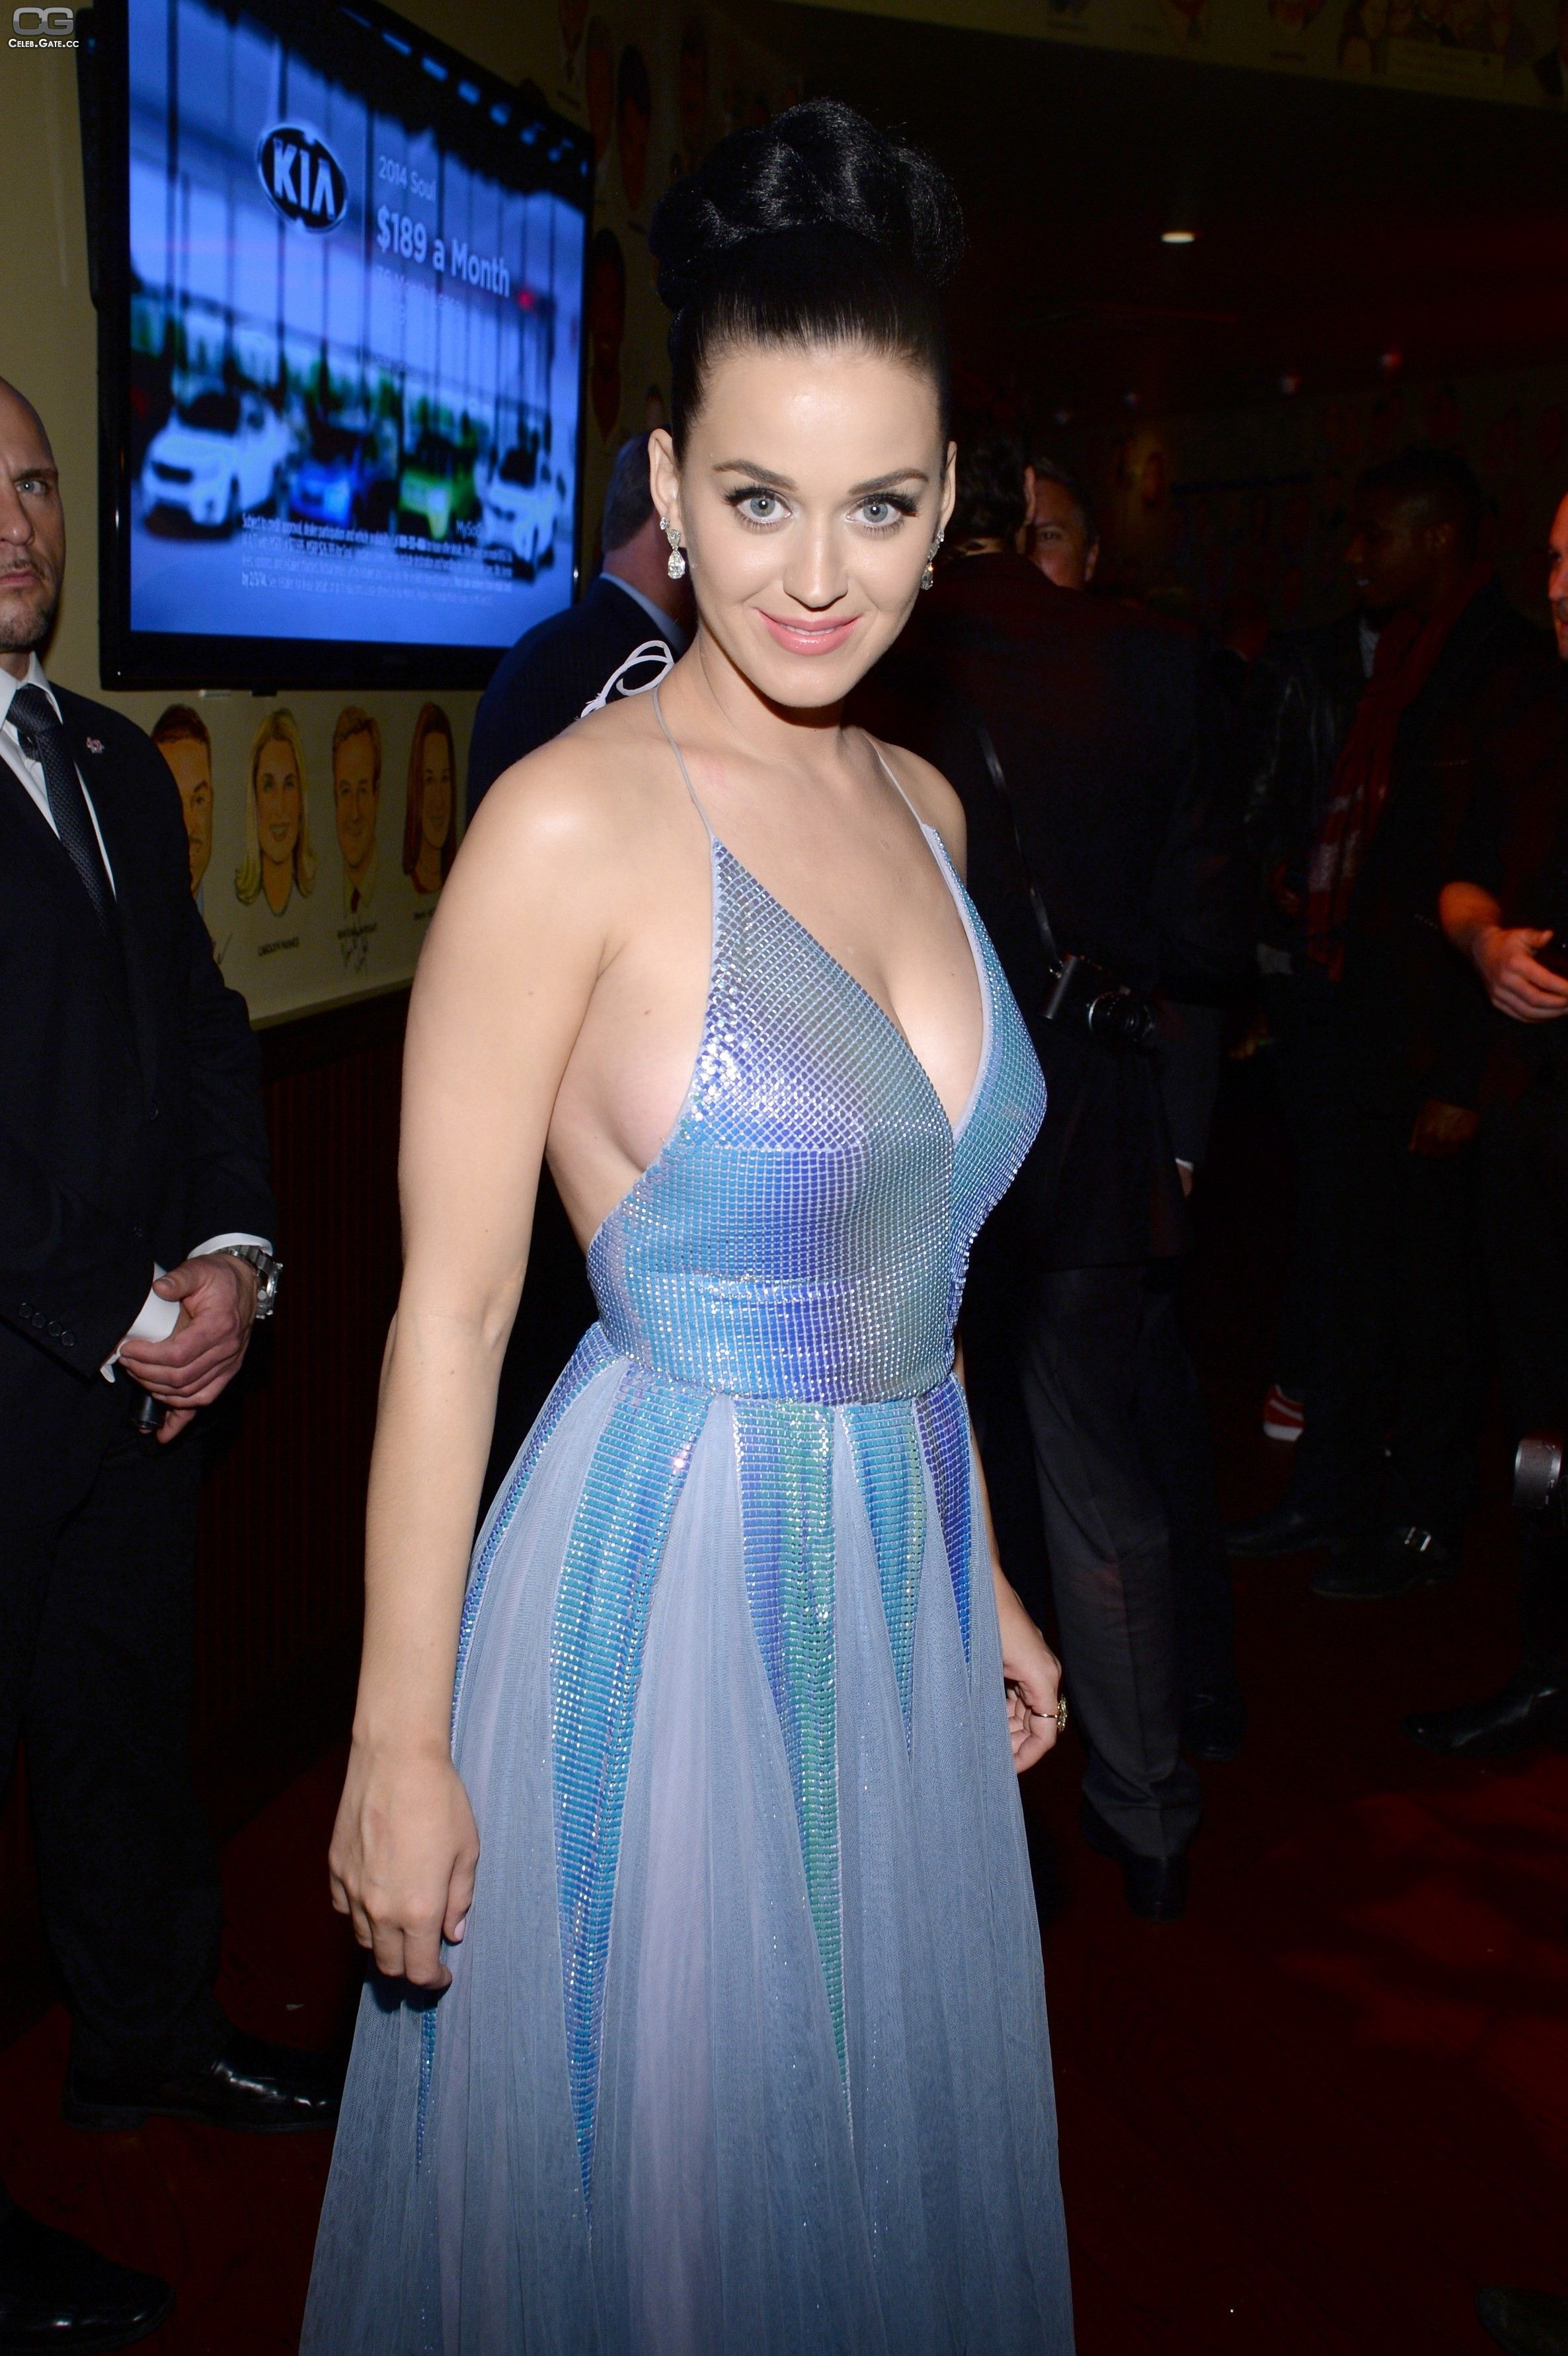 Watch Katy Perry Smiling Nude Pic video